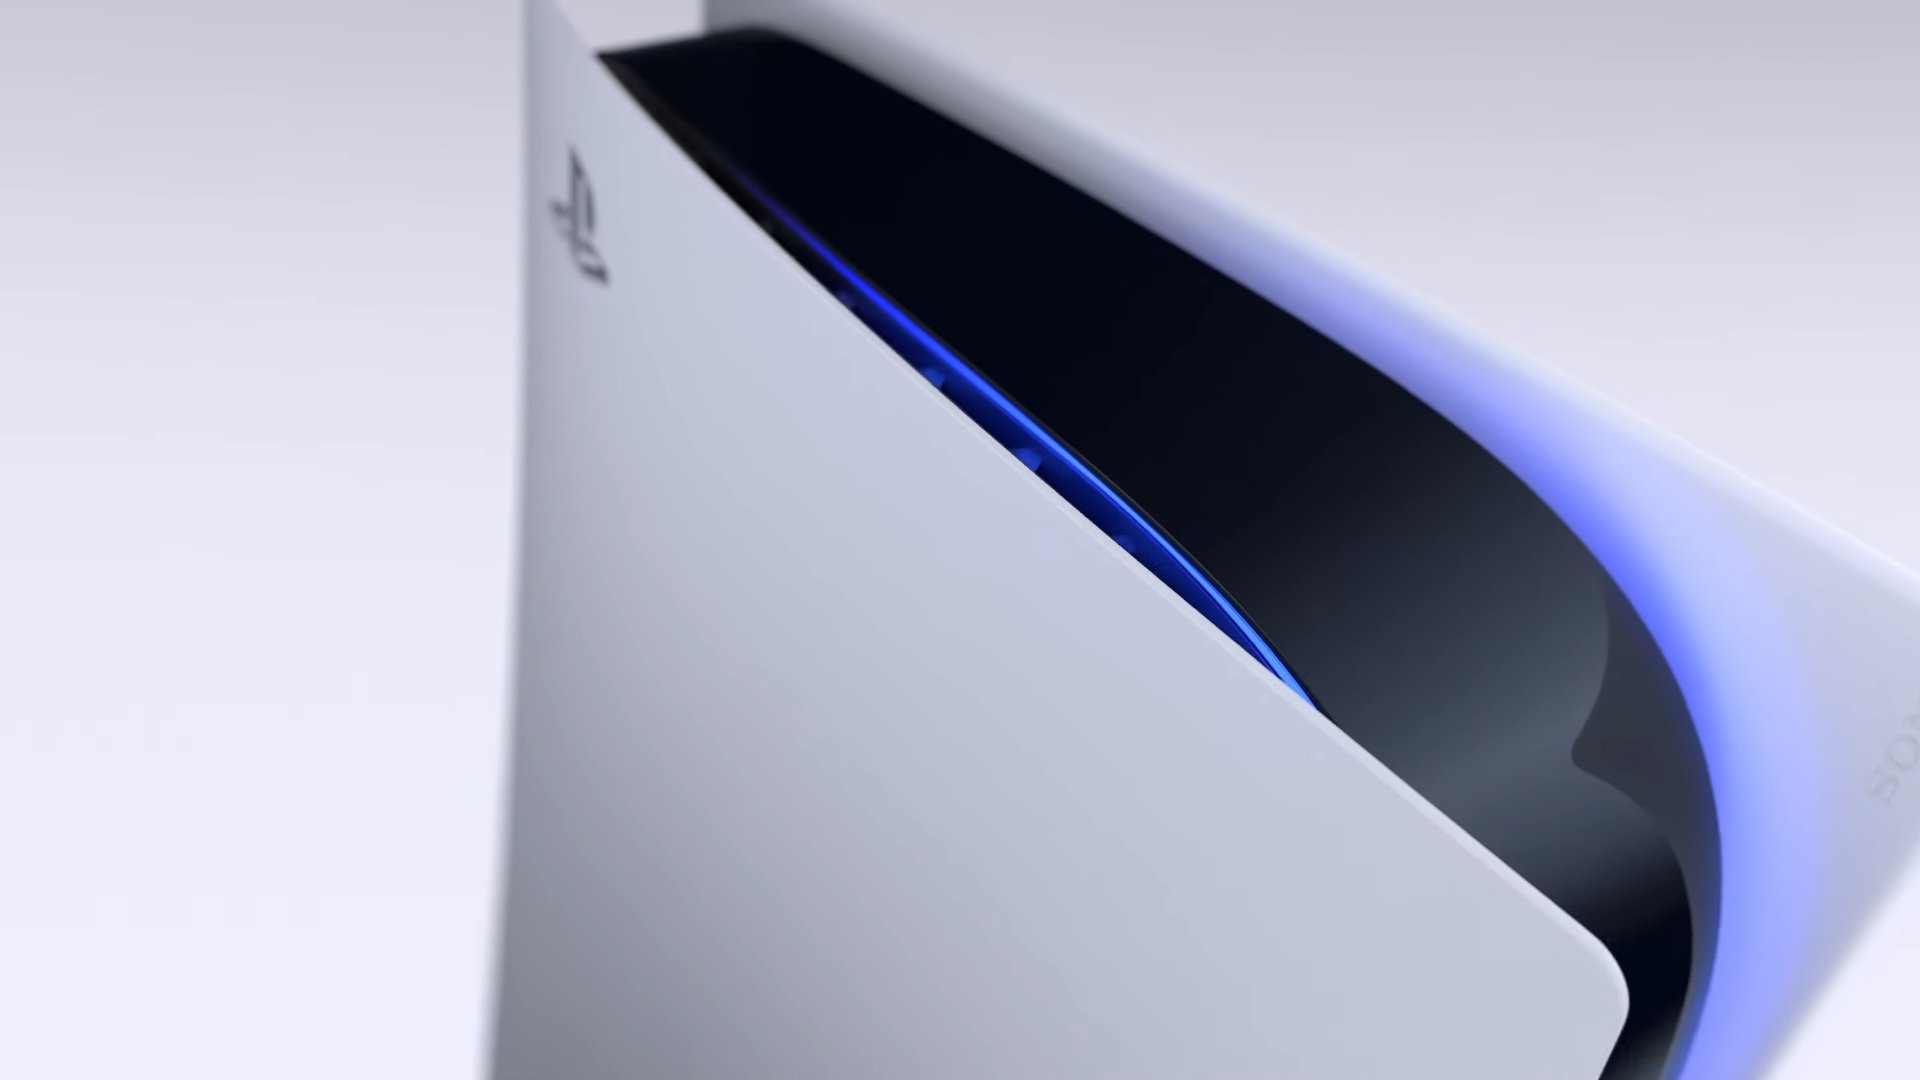 PlayStation 5 Design White Top